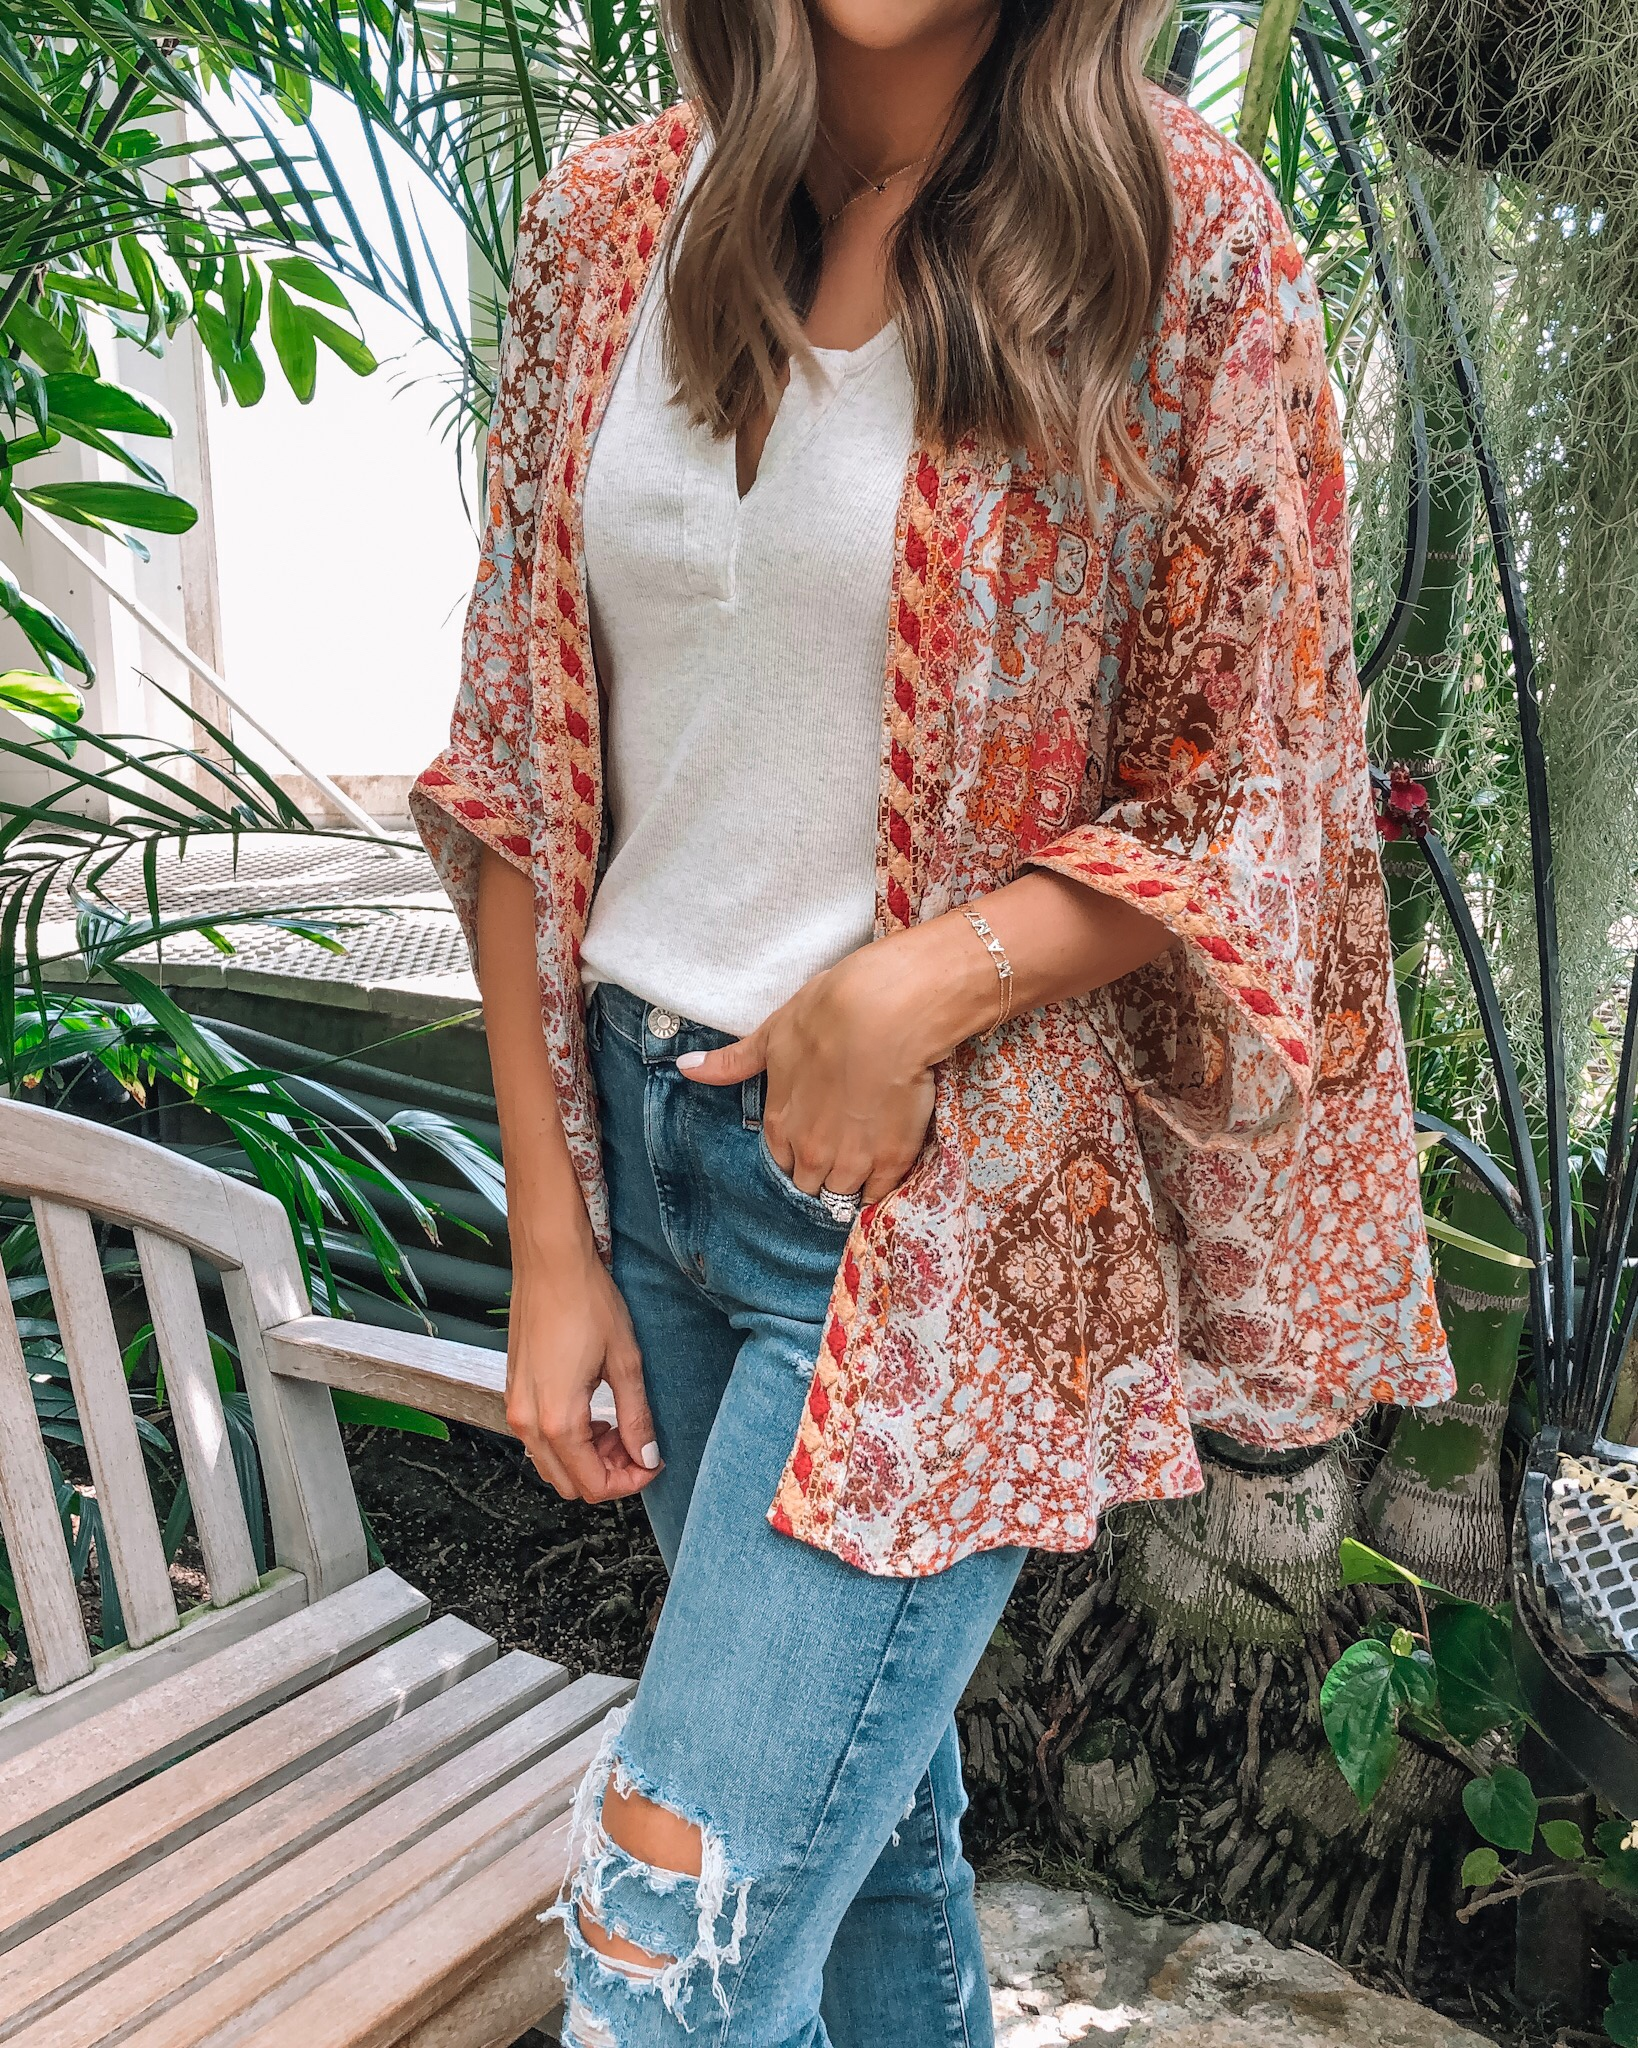 evereve Mother's Day sale 2019, Allison joy mosaic kimono, bobi rib tank, agolde Sophie crop